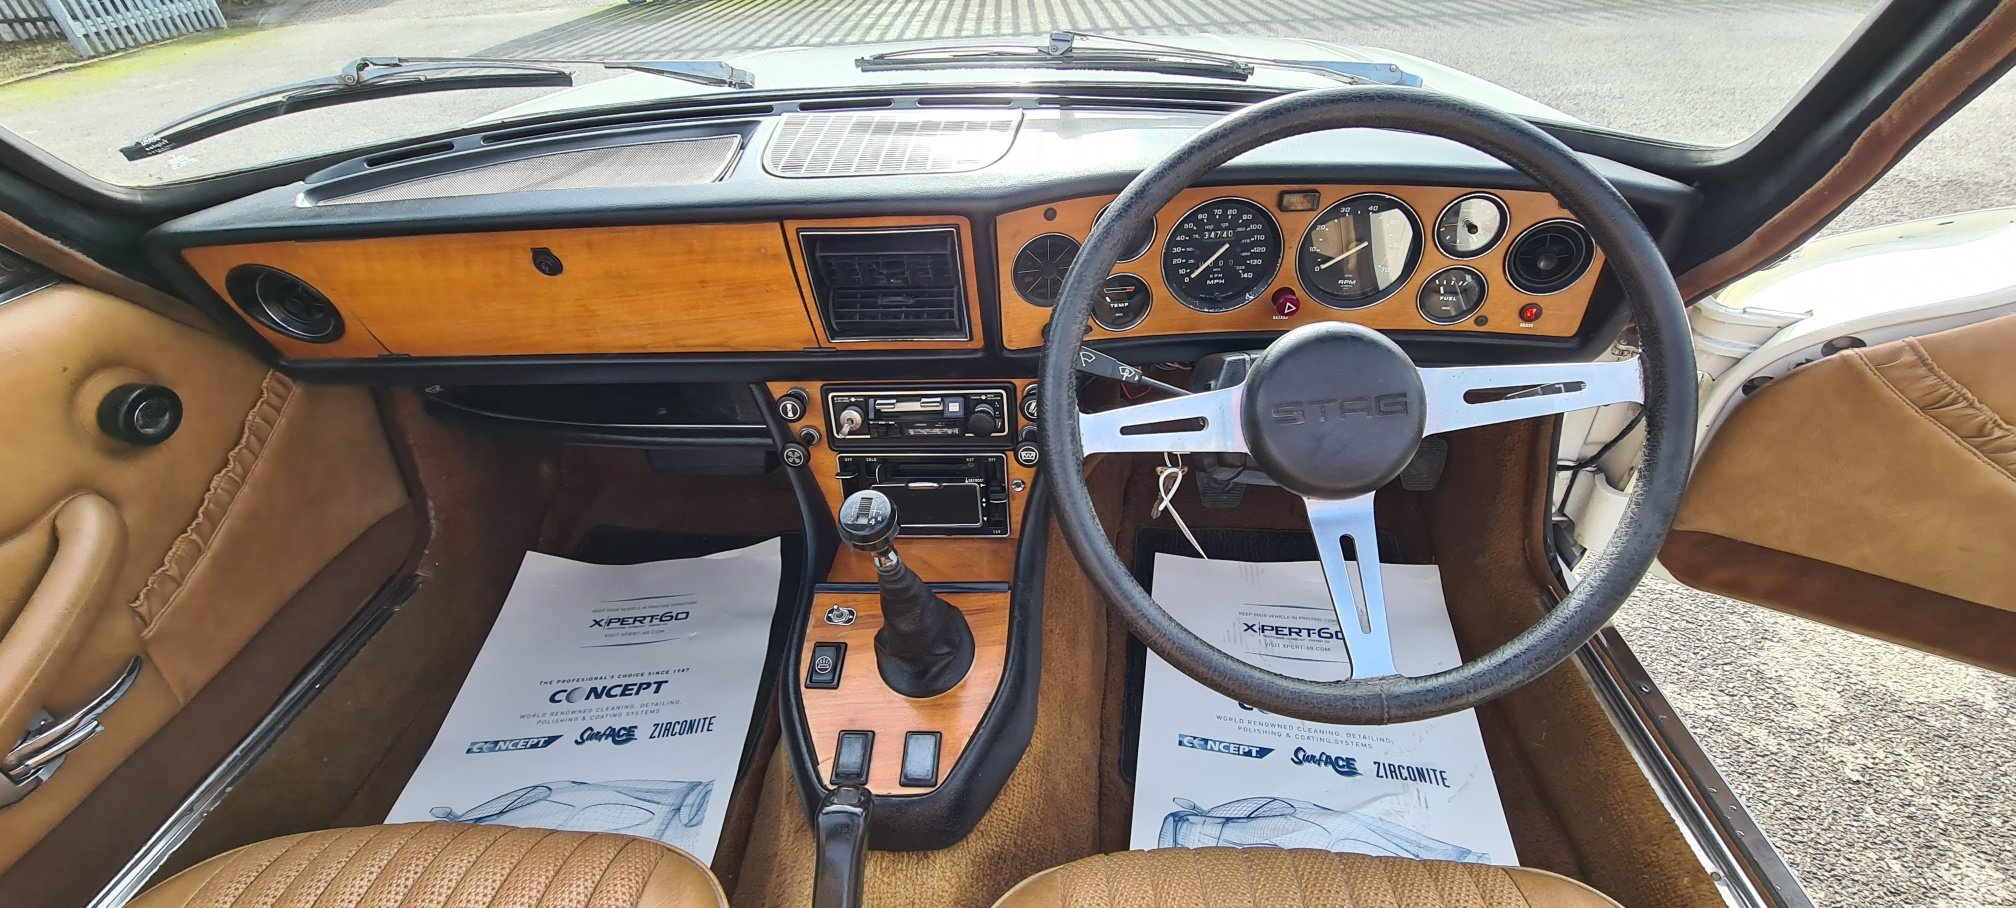 1977 1owner verified 34000 miles with supporting history  For Sale (picture 5 of 6)